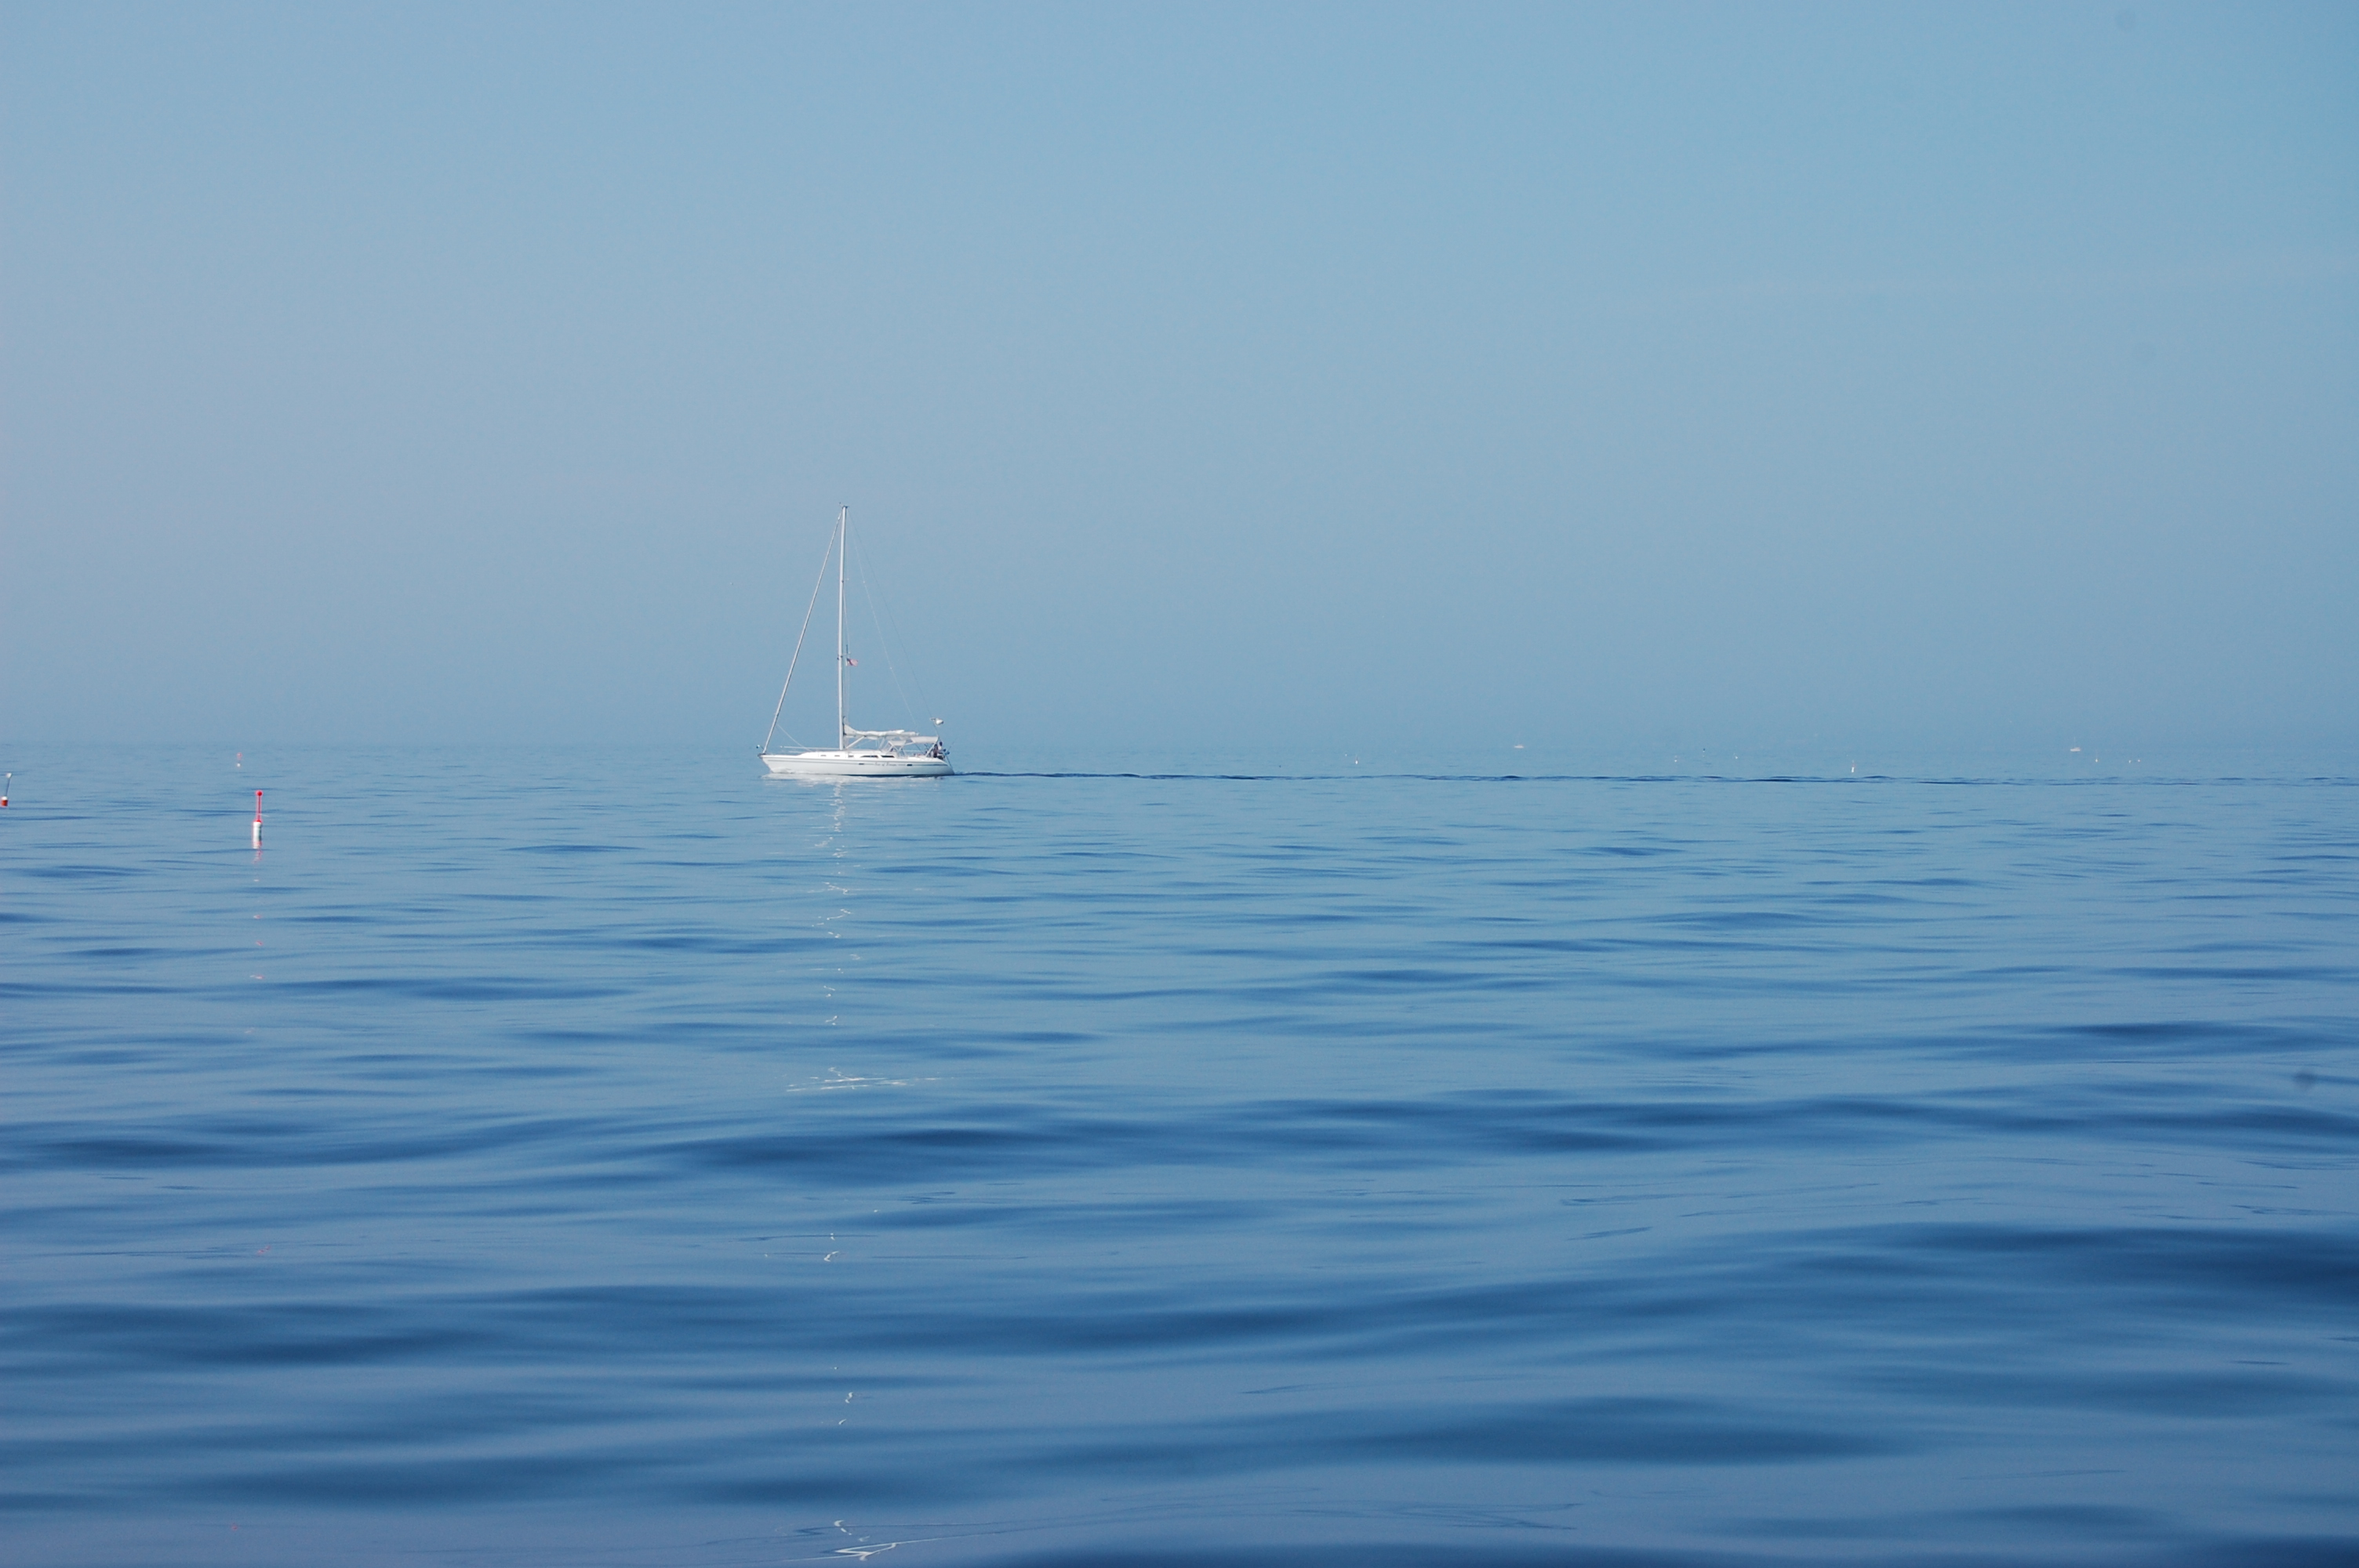 blue ocean with sailboat